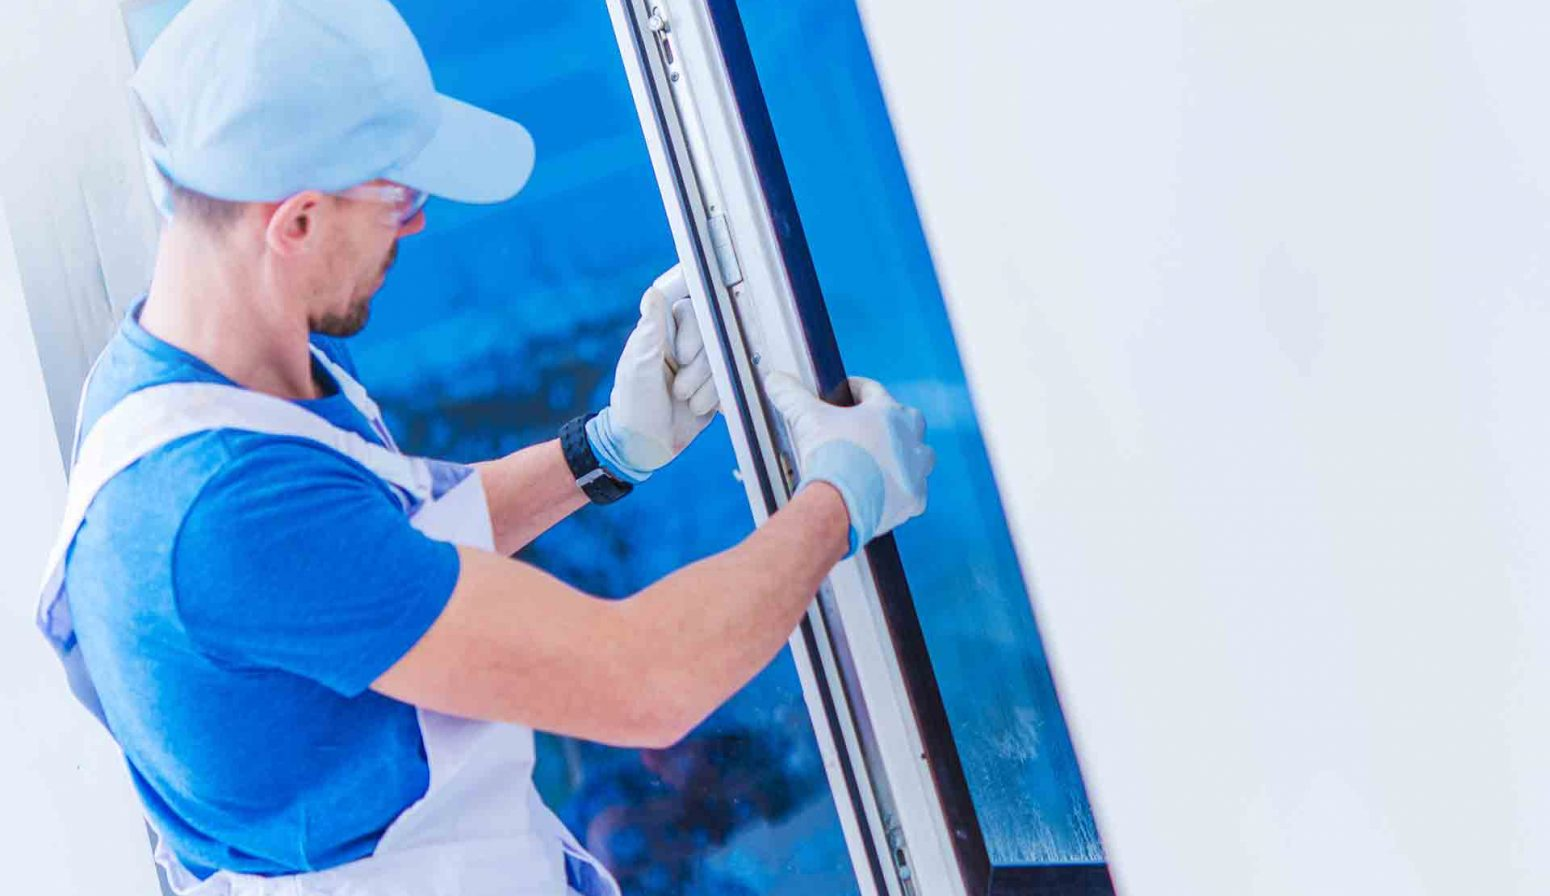 How Do You Know When It's Time to Replace Windows?